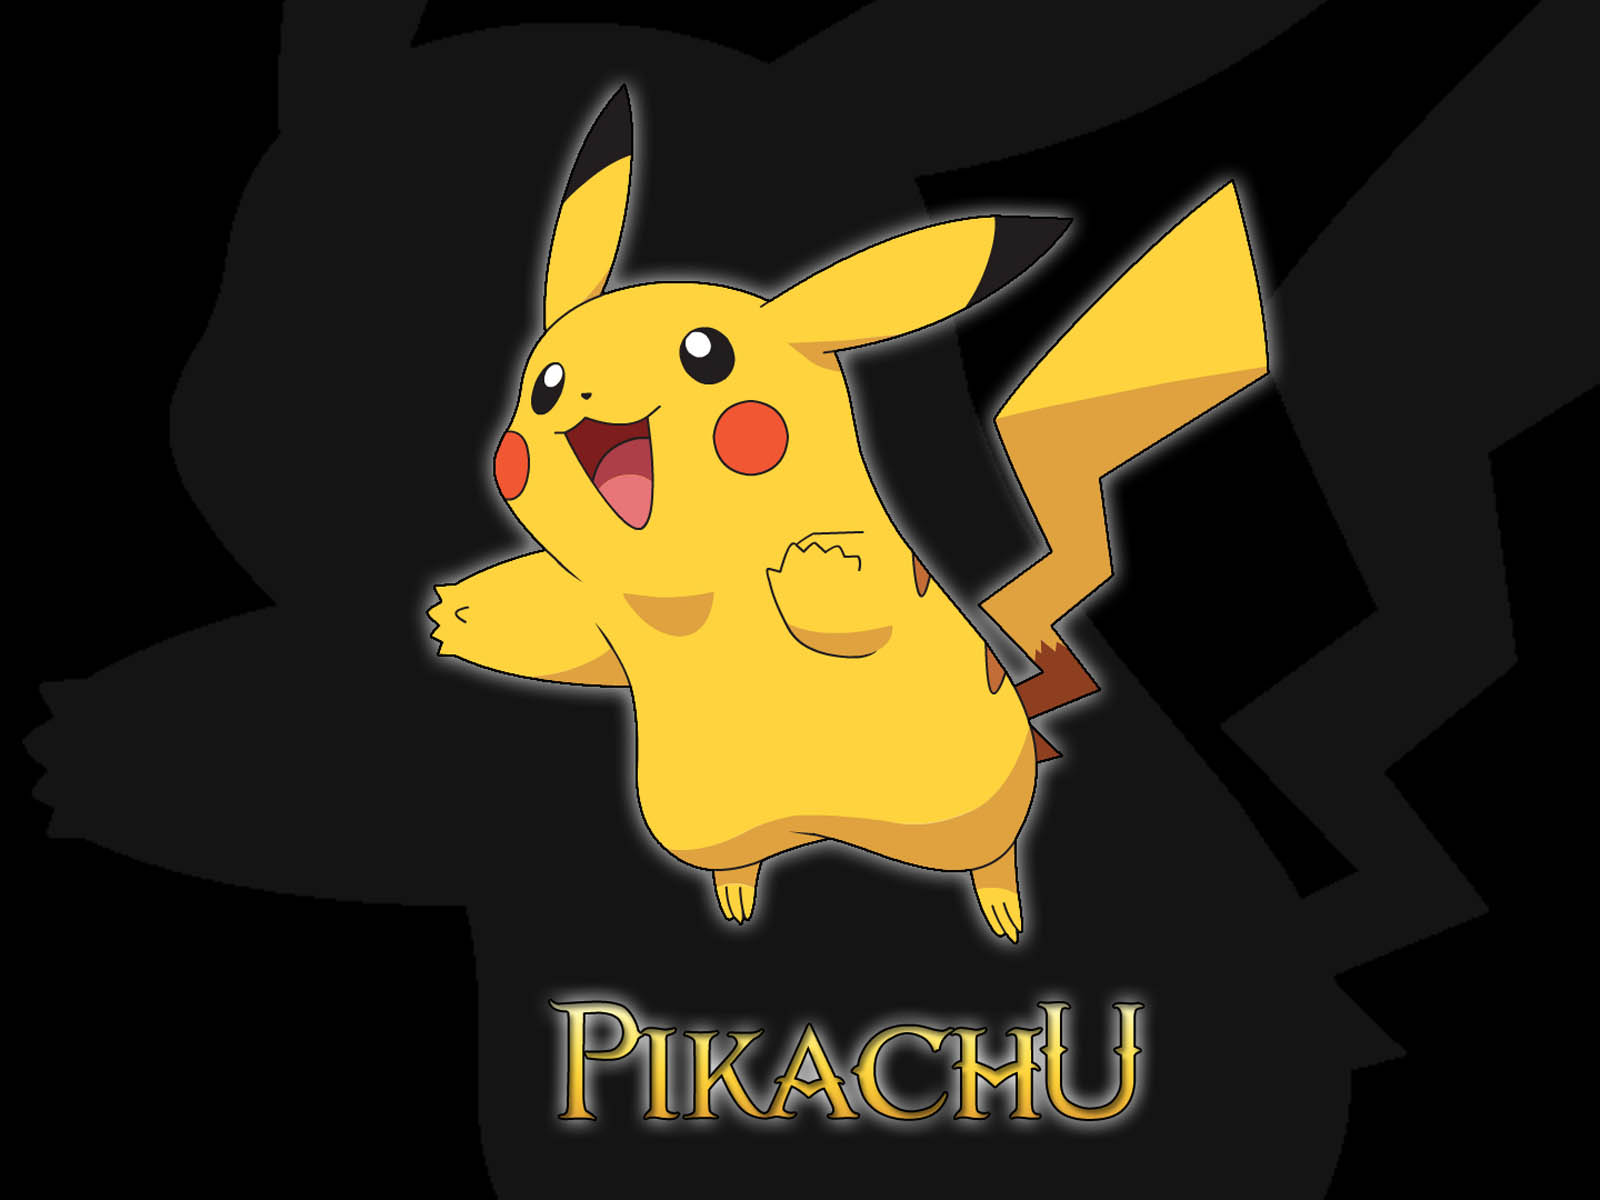 pikachu pokemon wallpaper - photo #1